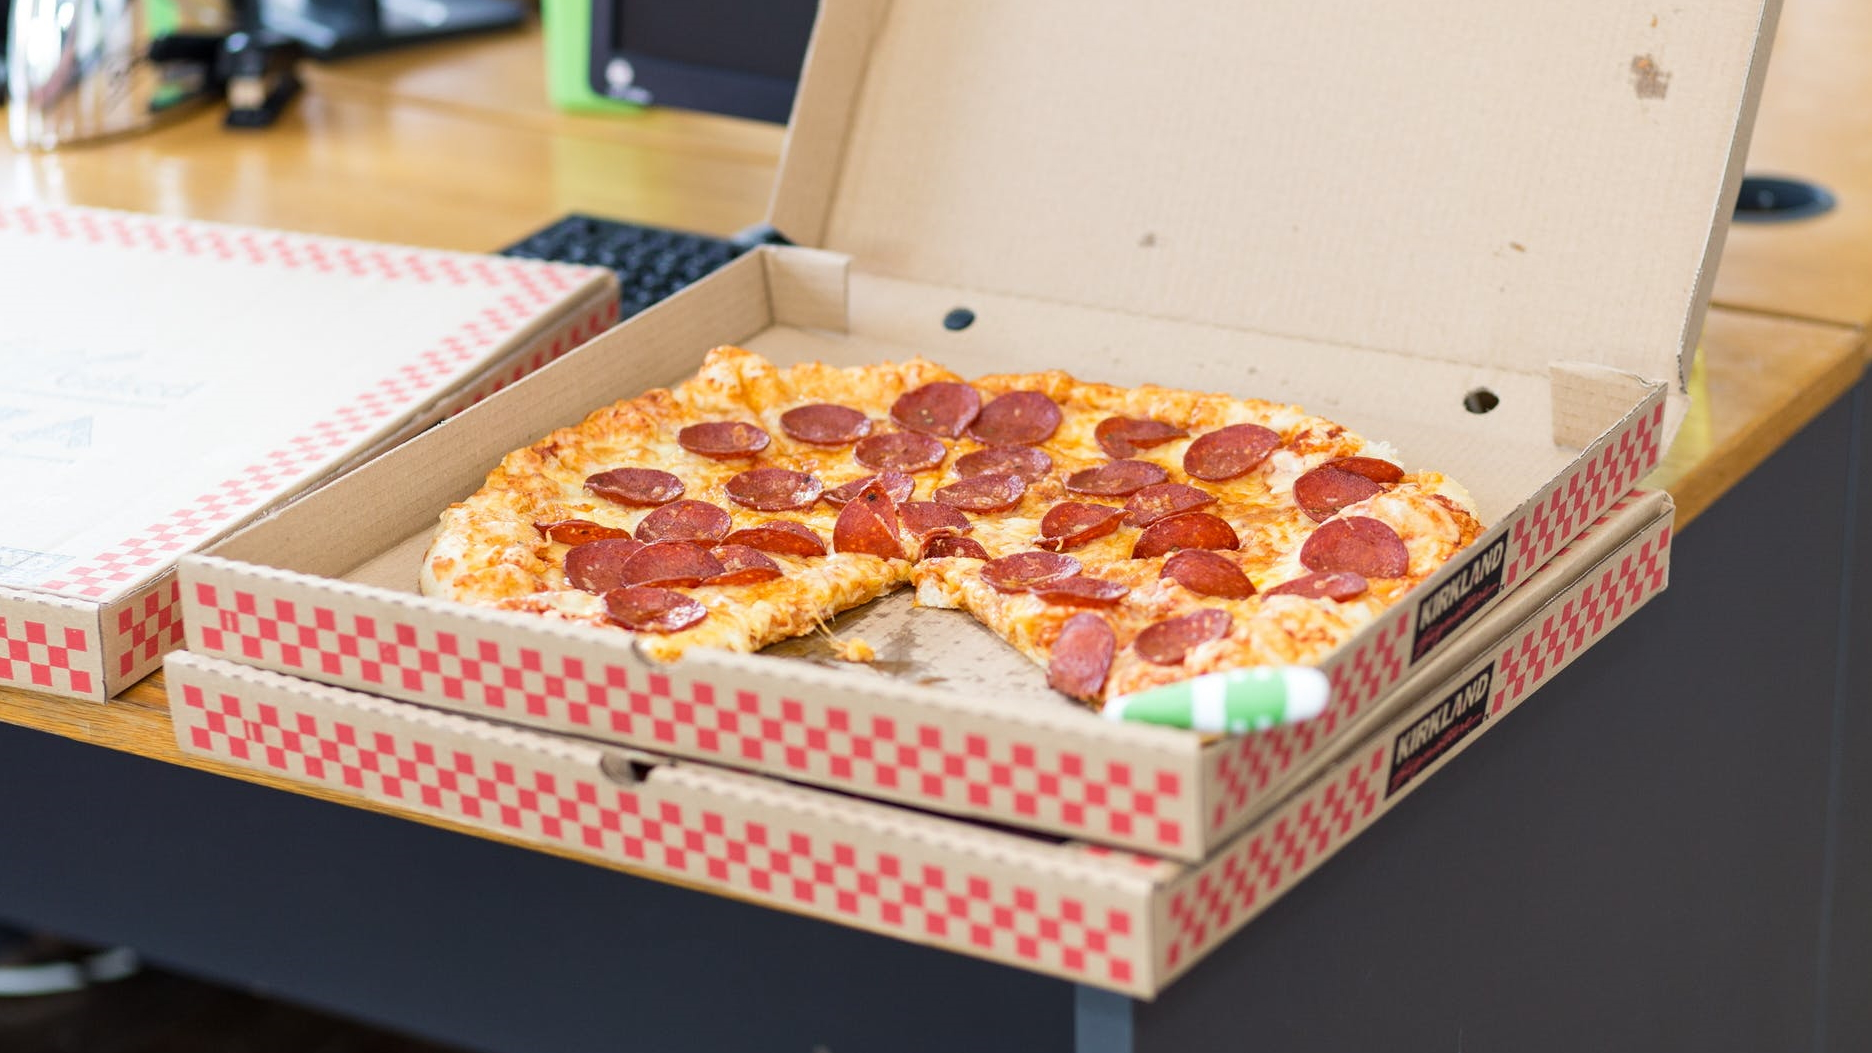 Pizza delivery available now - grab the latest pizza deals in your area